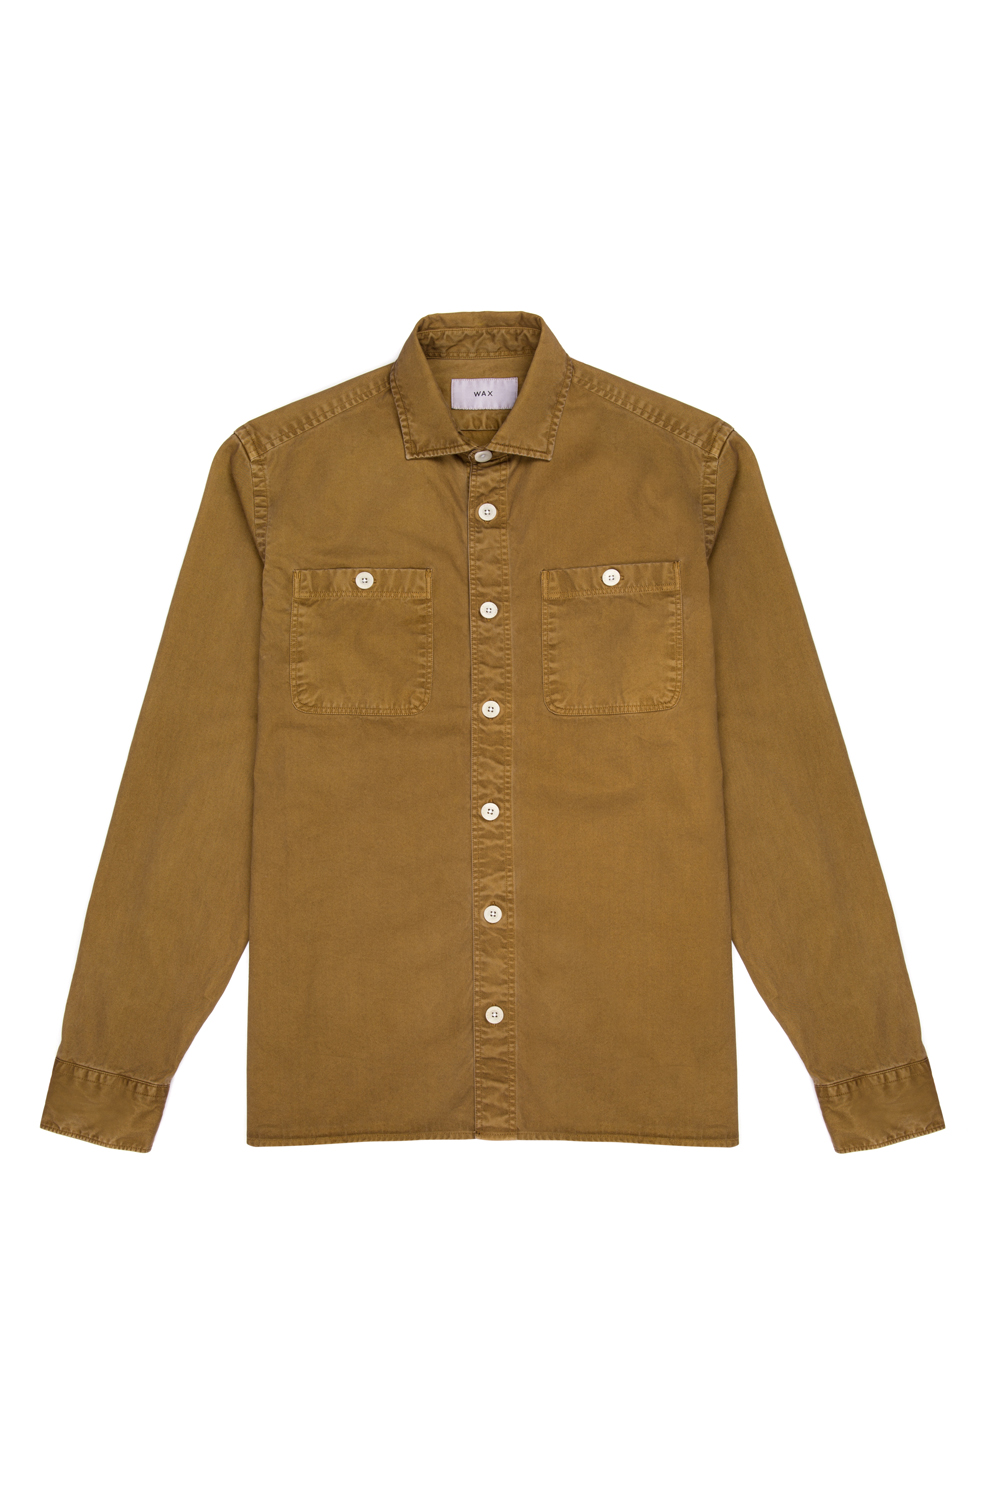 Wax London Fleet Shirt Sand